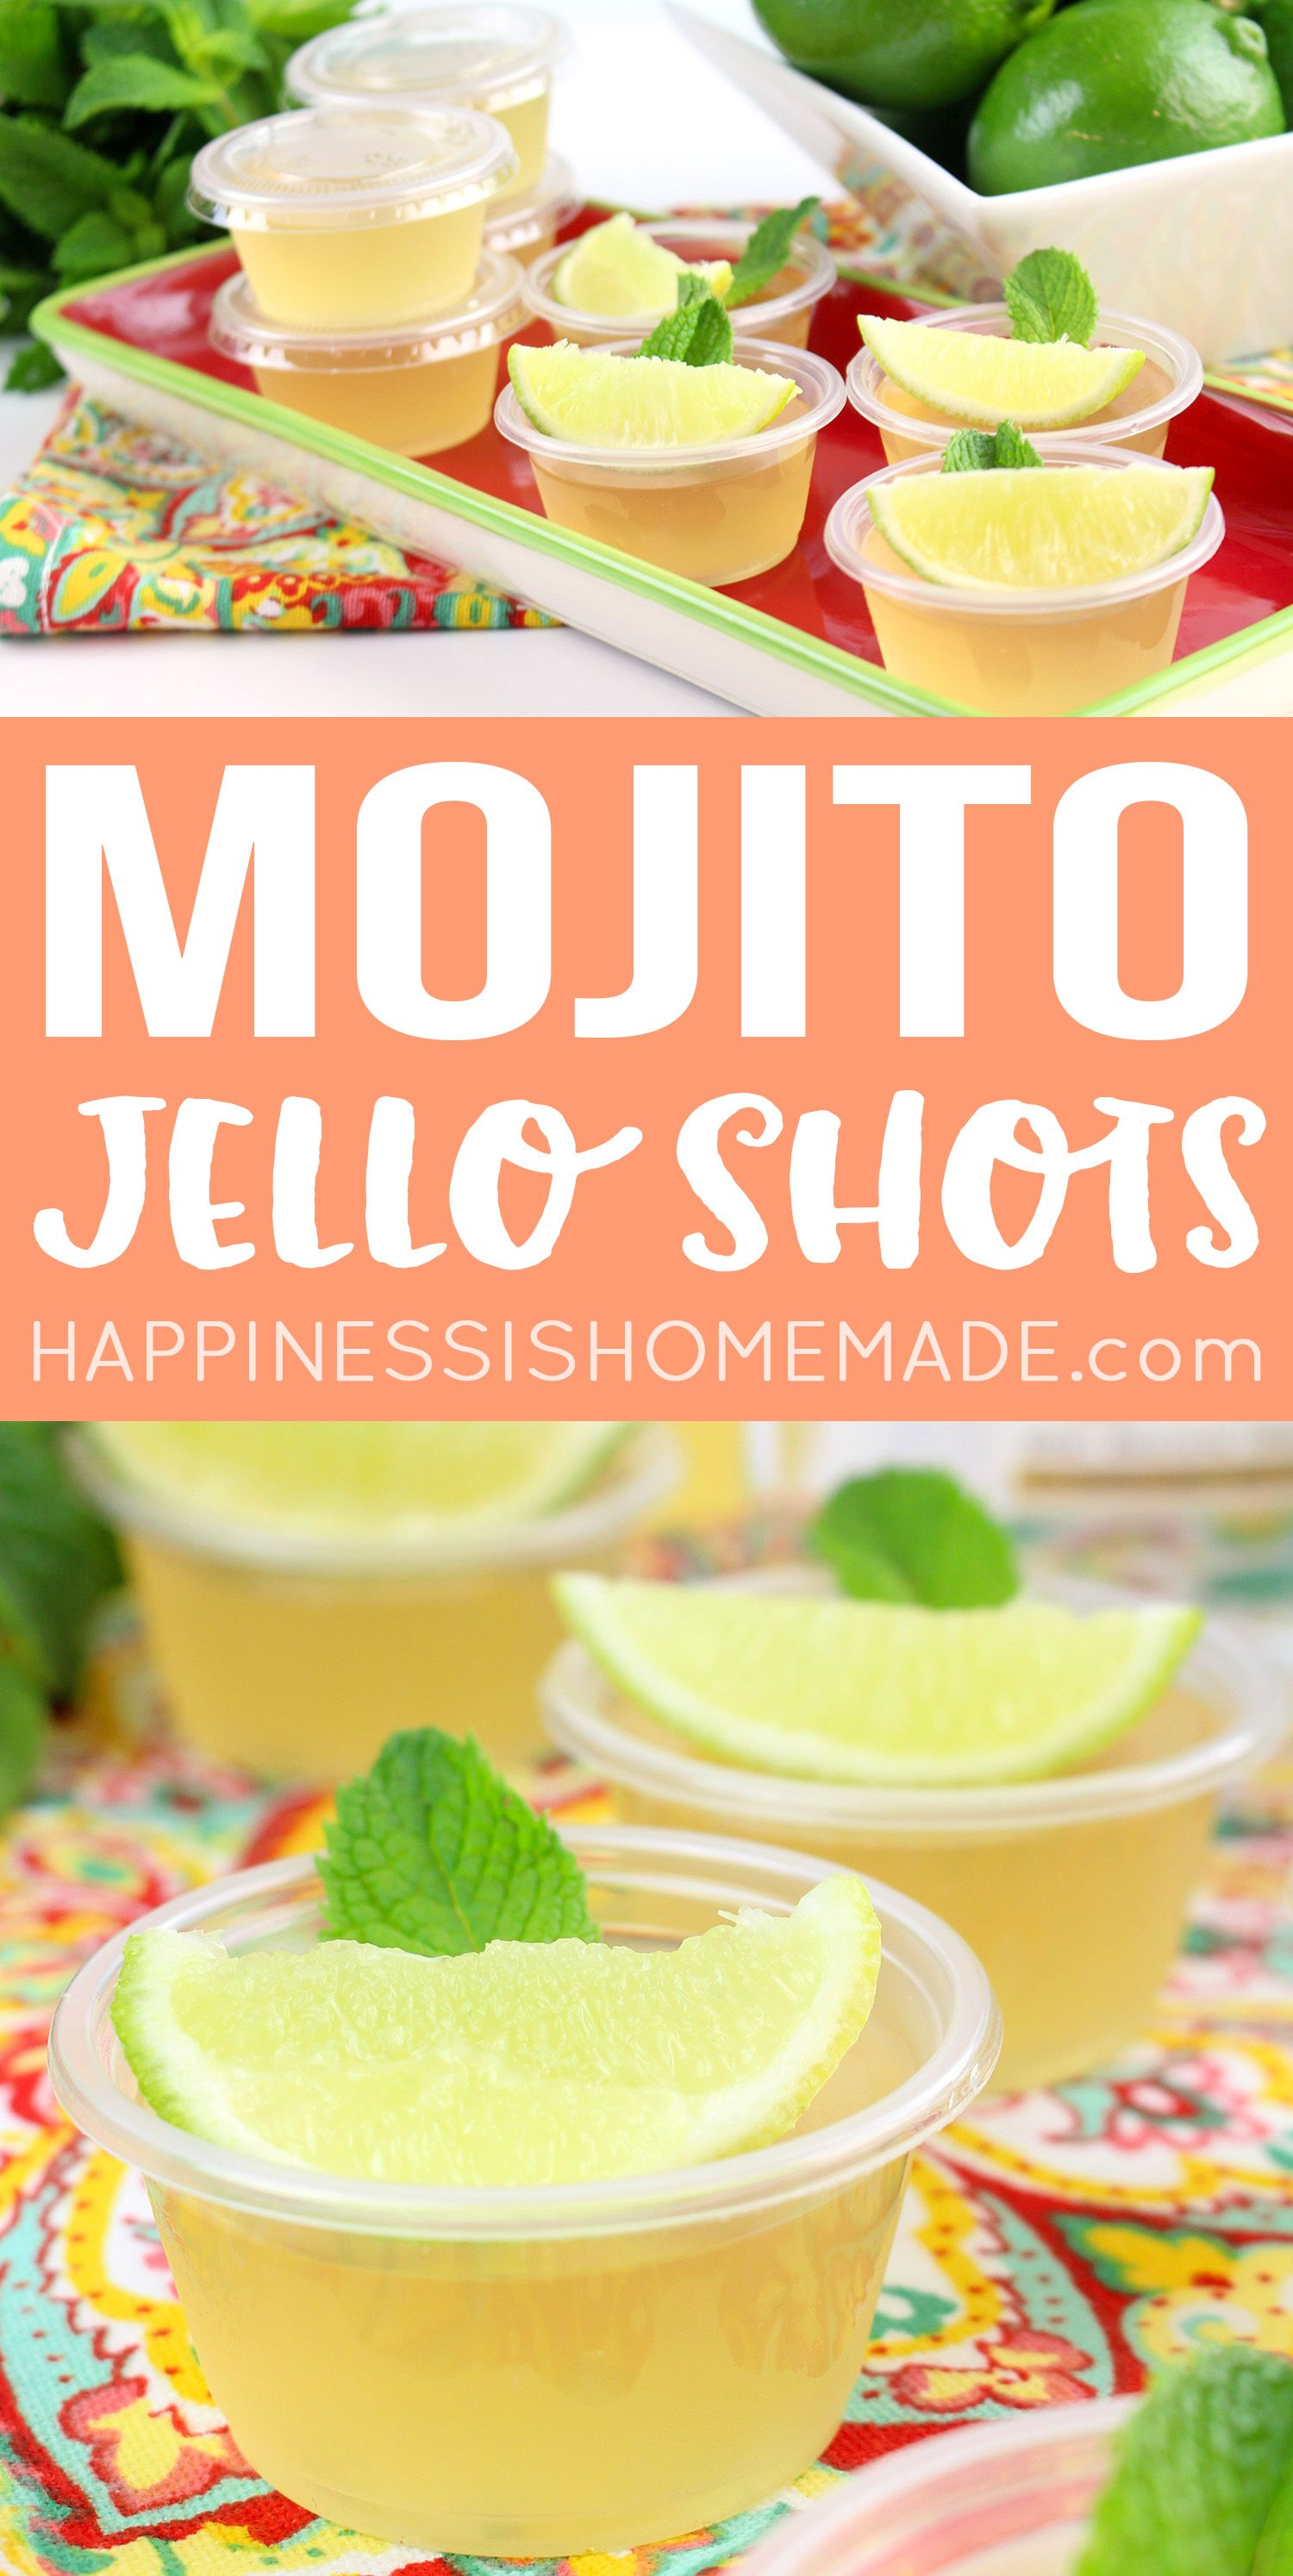 Mojito Jello Shots - Want to learn how to make jello shots? This yummy Mojito Jello Shot recipe is perfect for summer pool parties or any time of year! Delicious jello shots with rum, lime, and mint - YUM!     via @hiHomemadeBlog #jelloshots